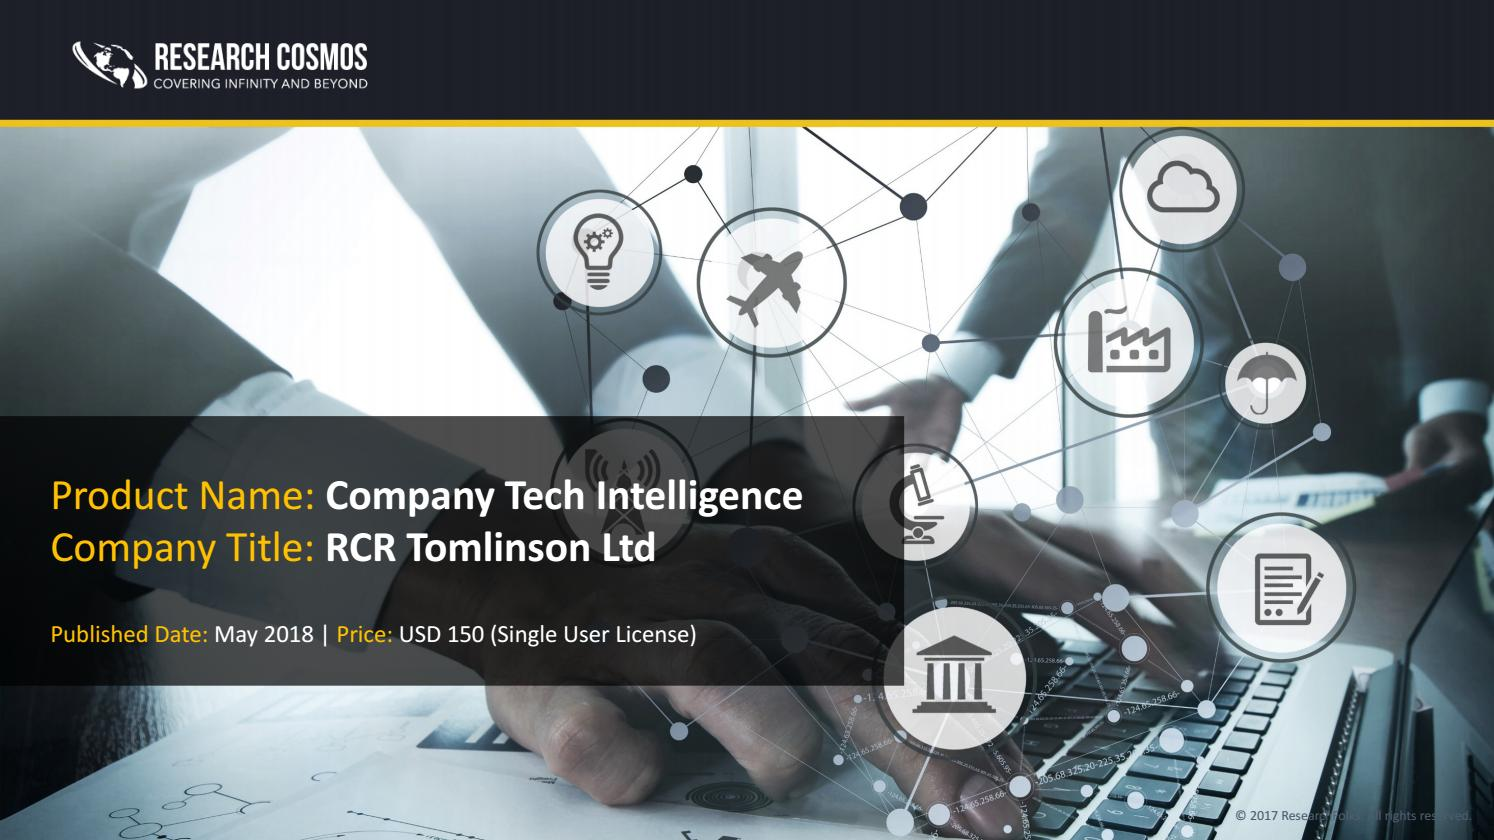 RCR TOMLINSON LTDCompany Profile and SWOT Analysis | Research Cosmos